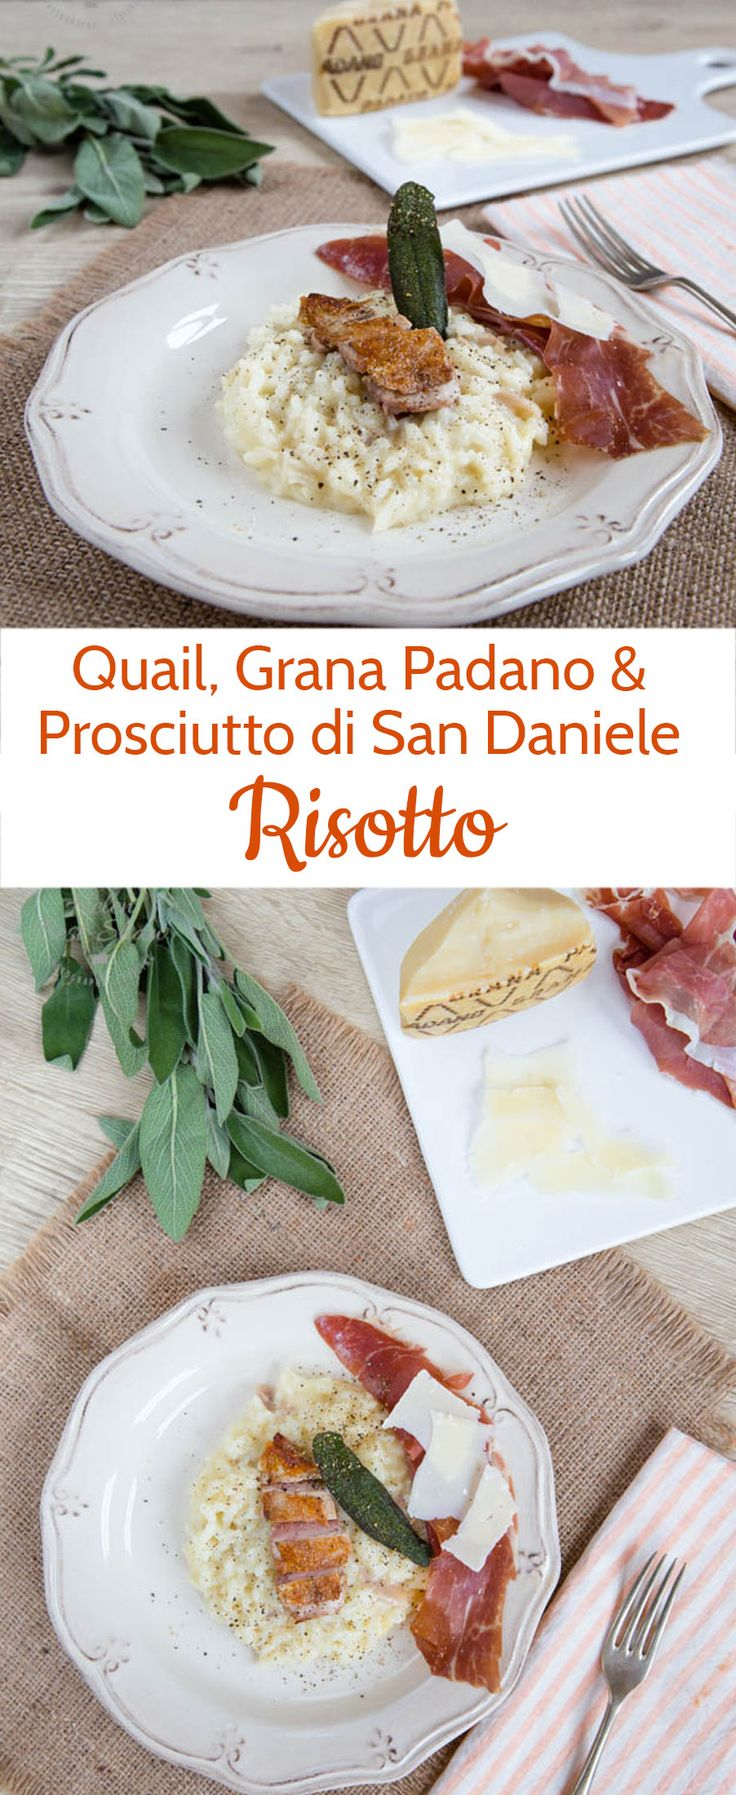 Treat yourself to something a little out of the ordinary with this quail and Grana Padano risotto with Prosciutto di San Daniele recipe by Giorgio Locatelli